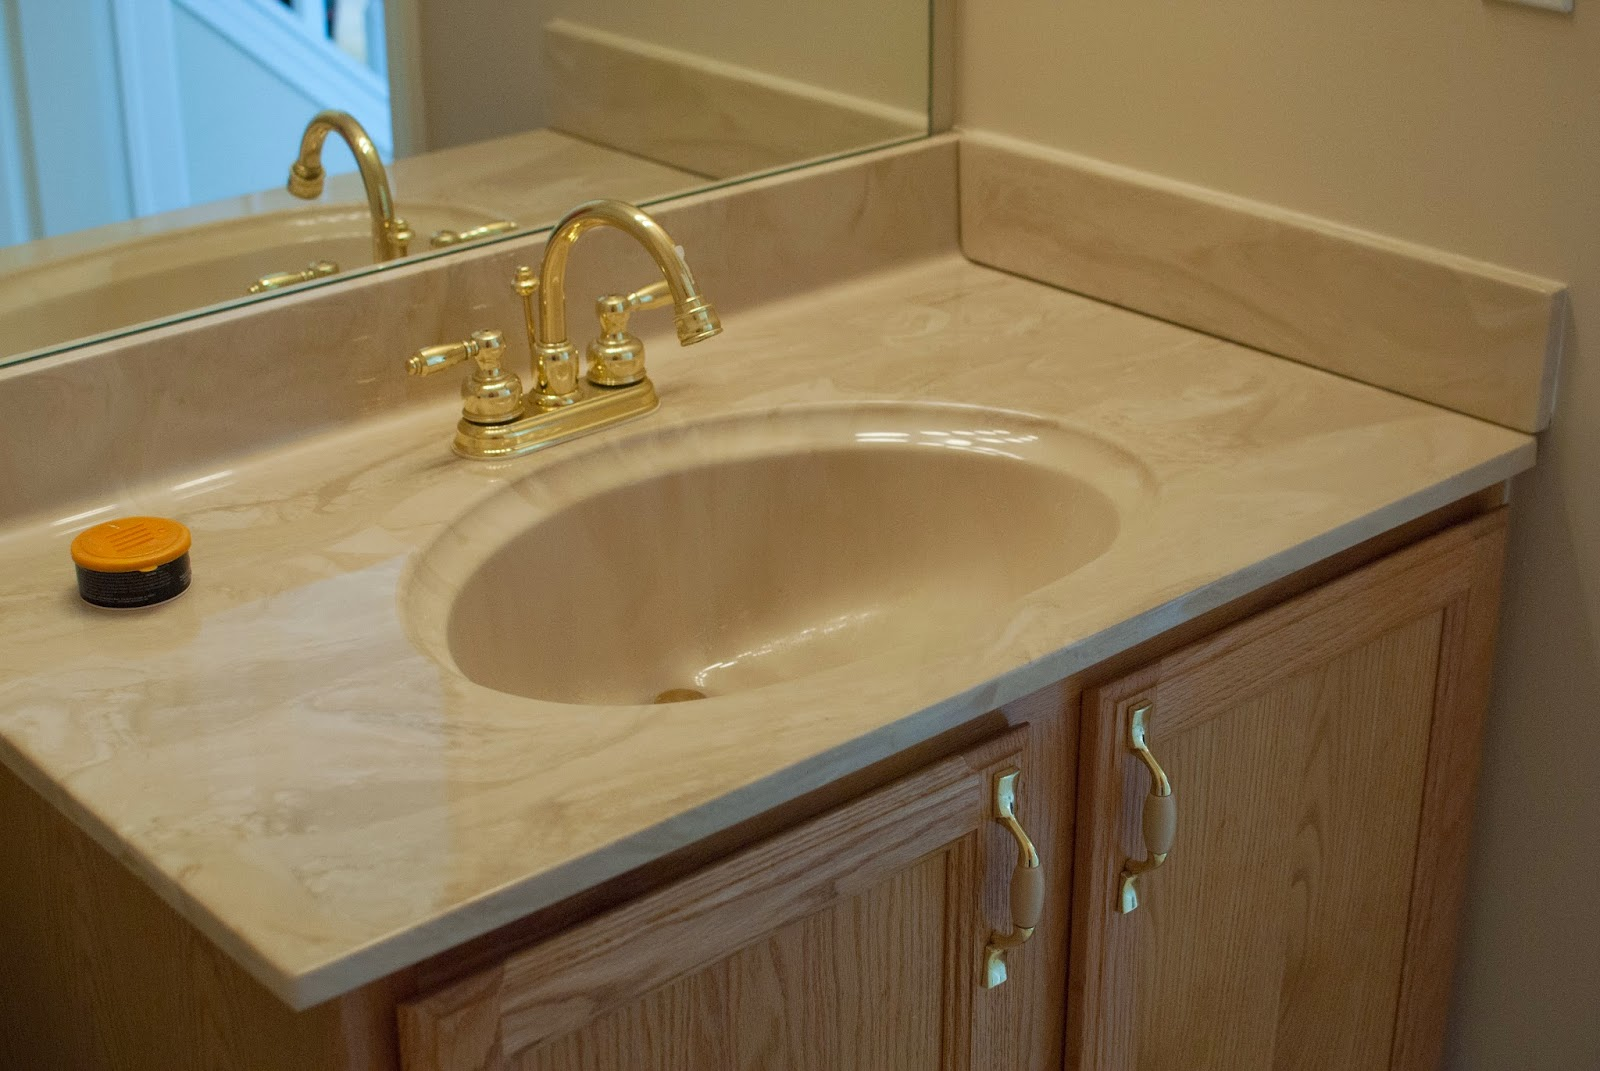 Bathroom Sinks Countertops : Remodelaholic Painted Bathroom Sink and Countertop Makeover